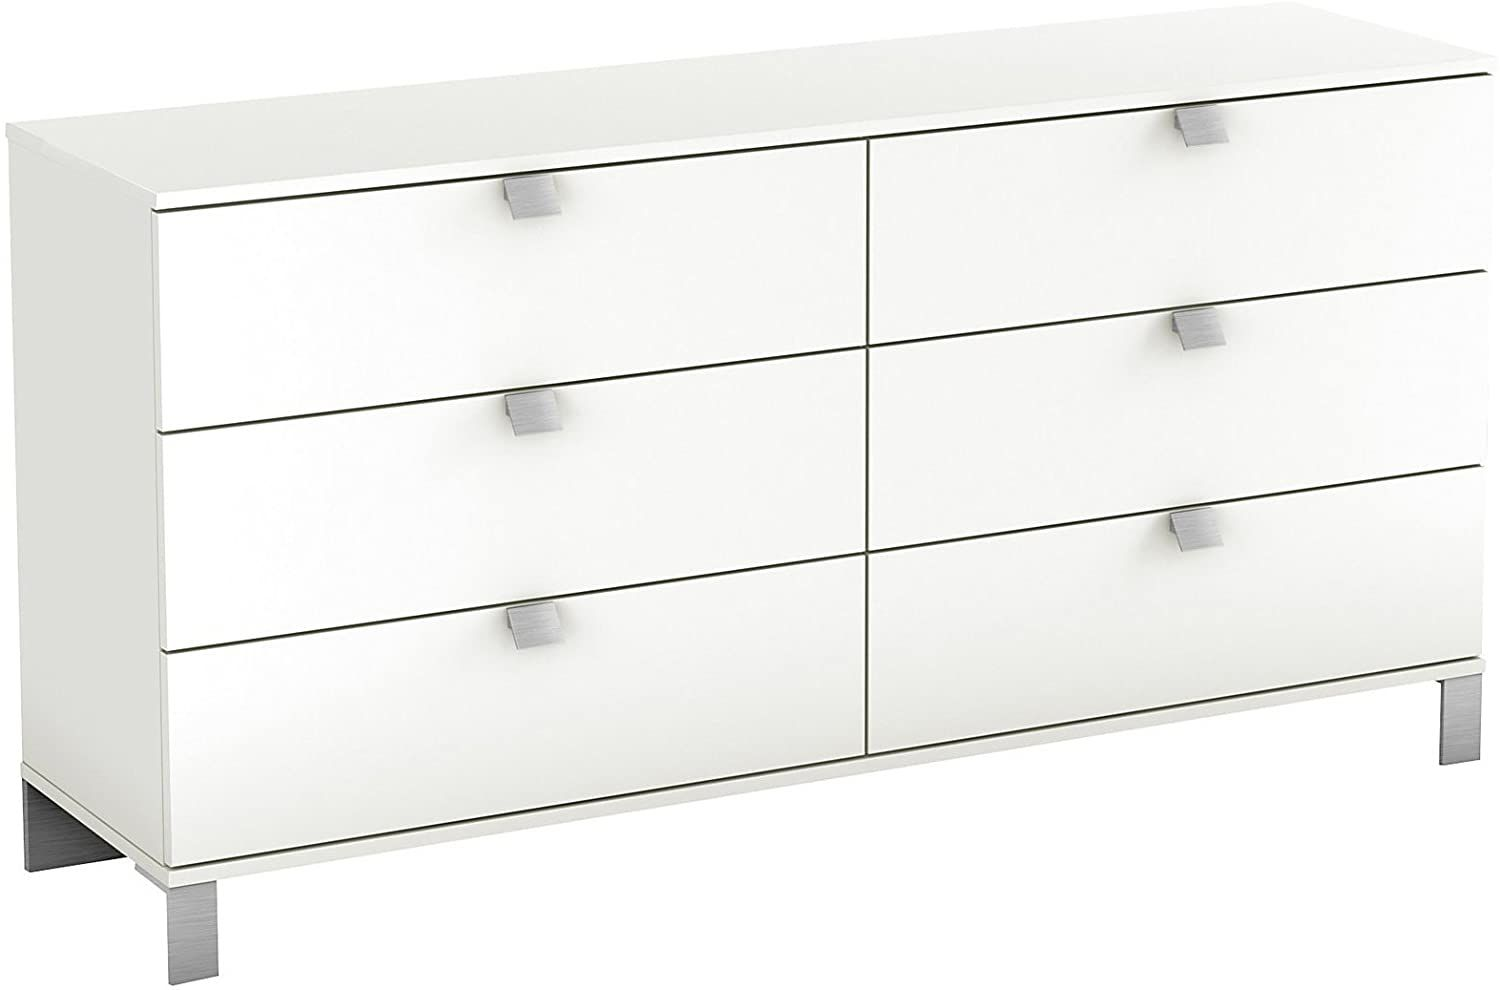 South Shore Spark 6 Drawer Double Dresser Pure White Home Kitchen Furniture Bedroom Furniture Dressers Furnitu Dresser Drawers Dresser White Dresser [ 990 x 1500 Pixel ]